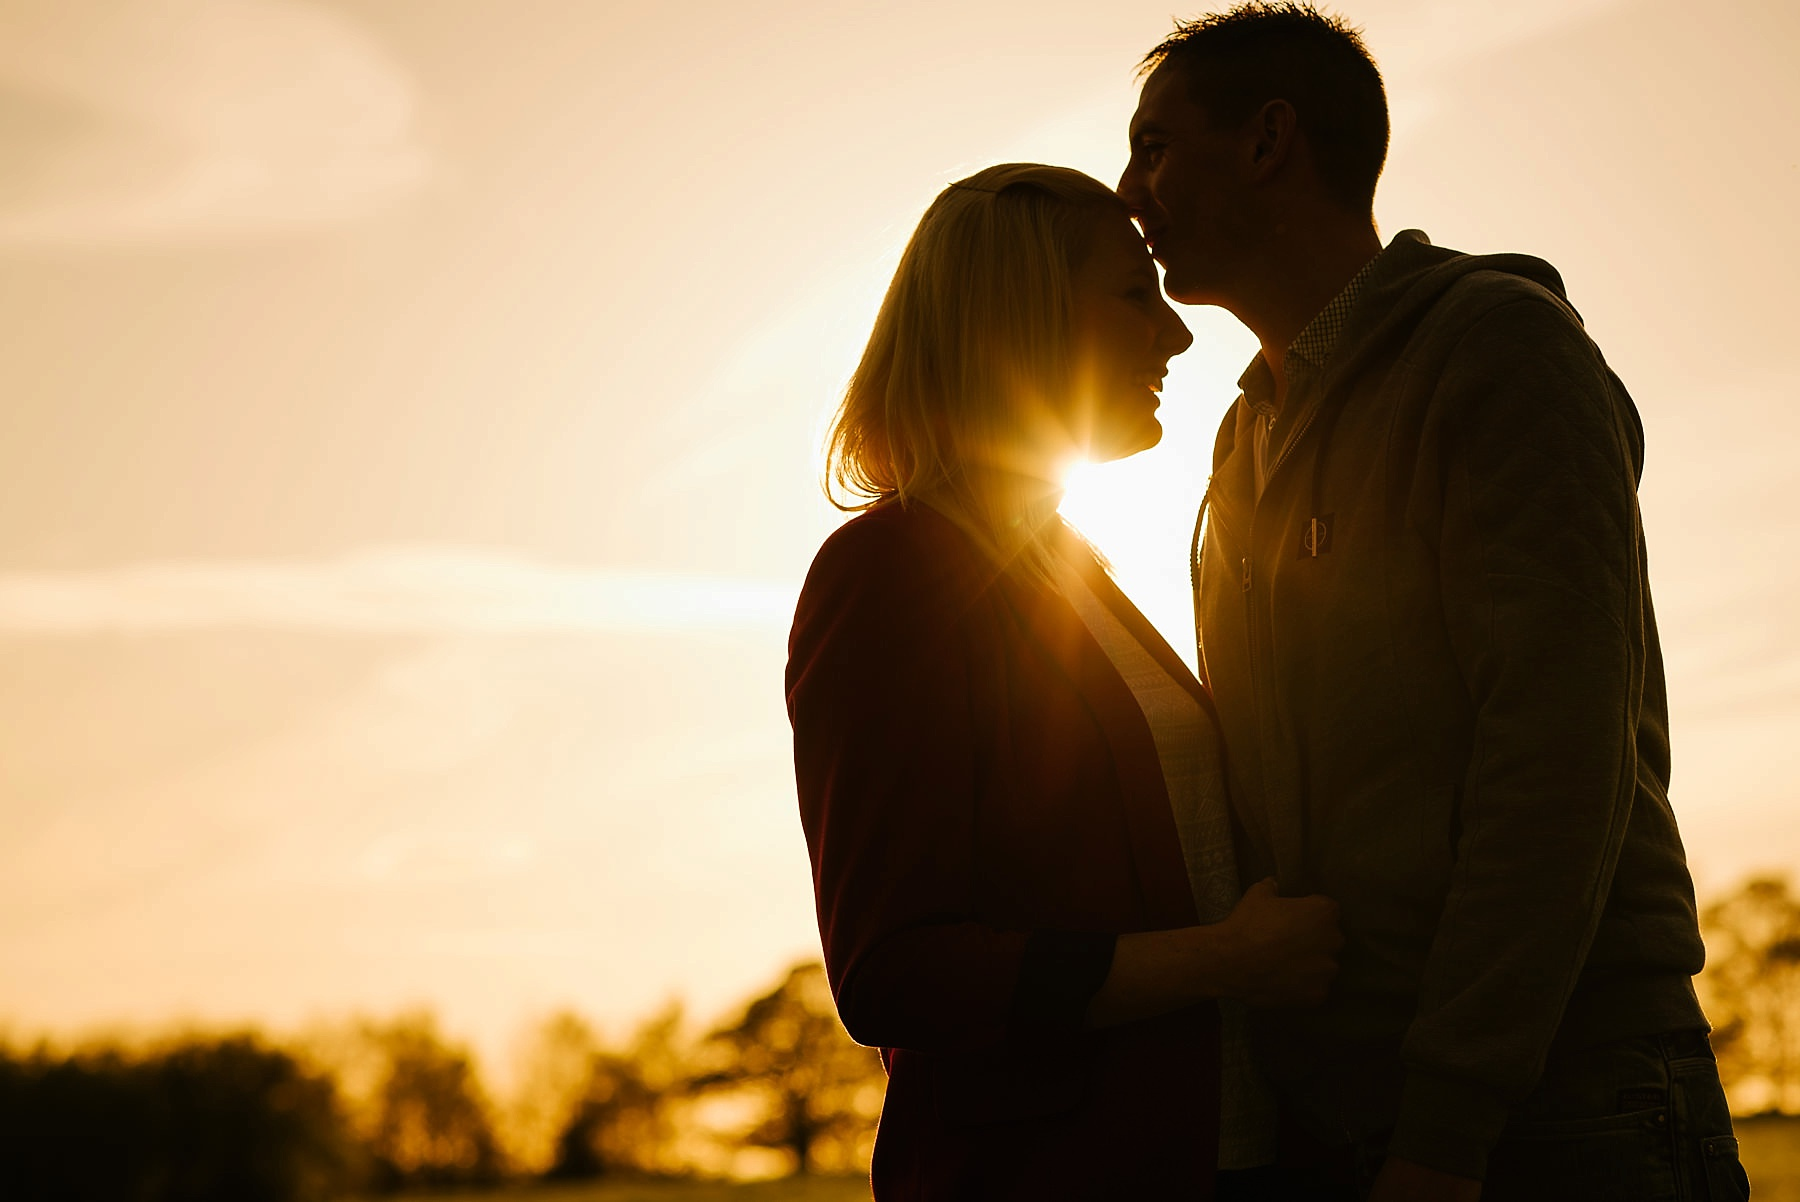 Man kissing woman on head at sunset